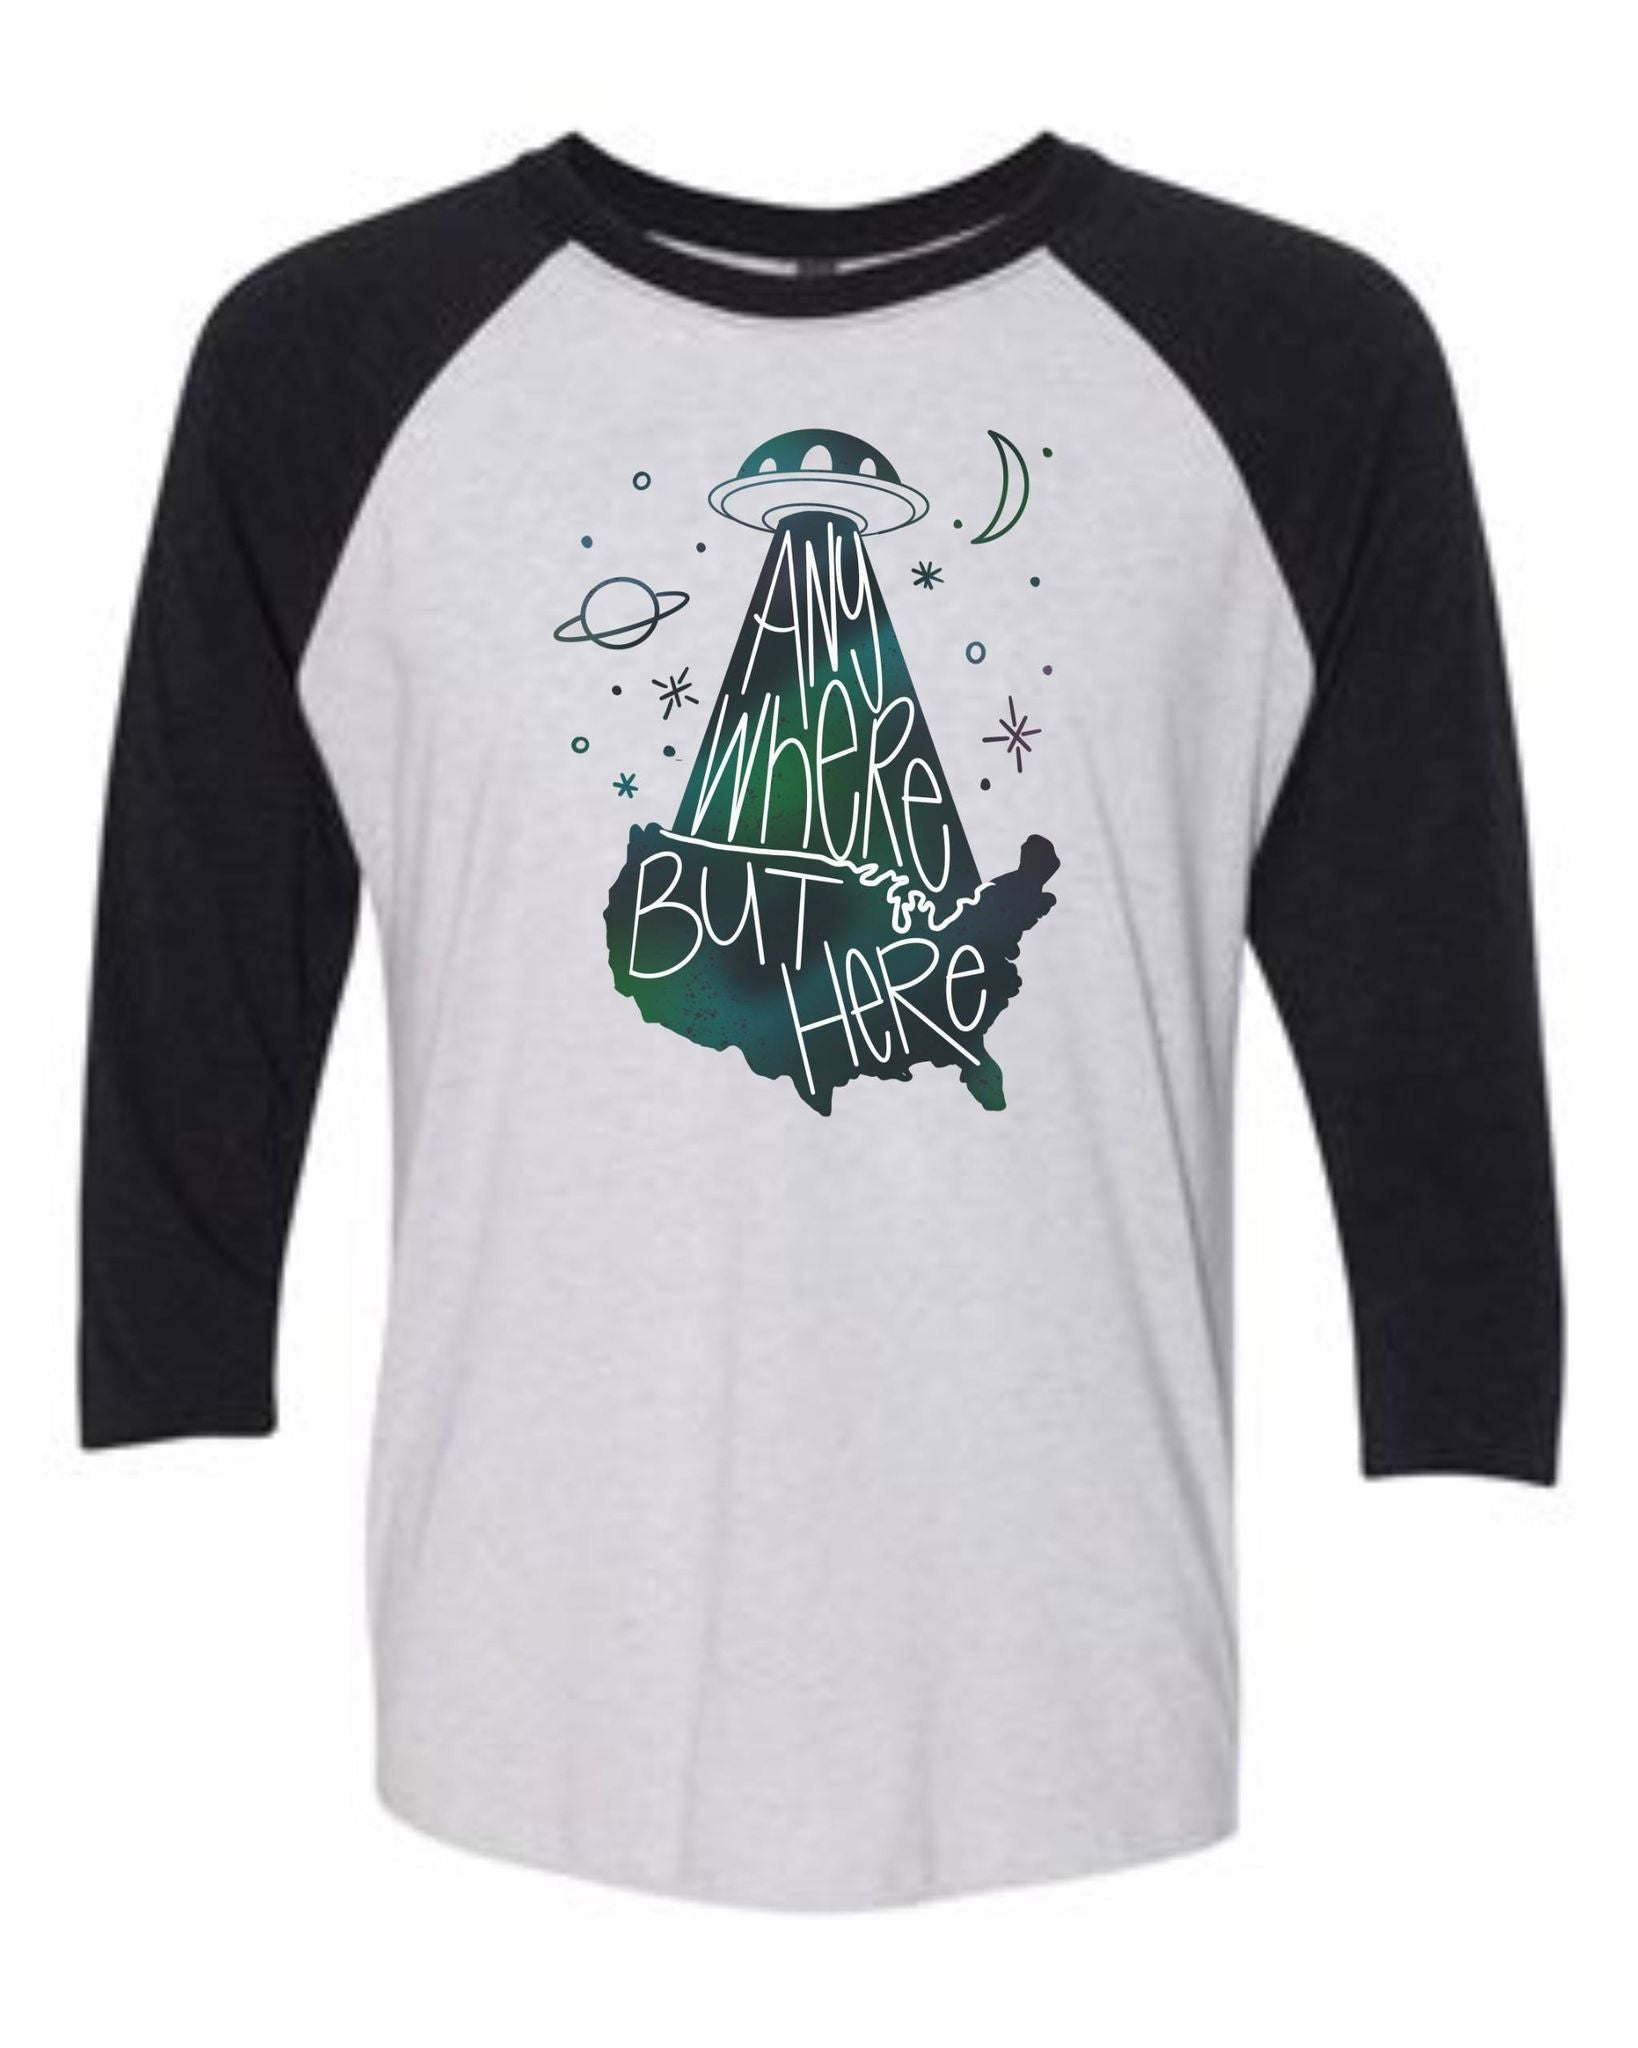 Anywhere But Here Tee or Raglan